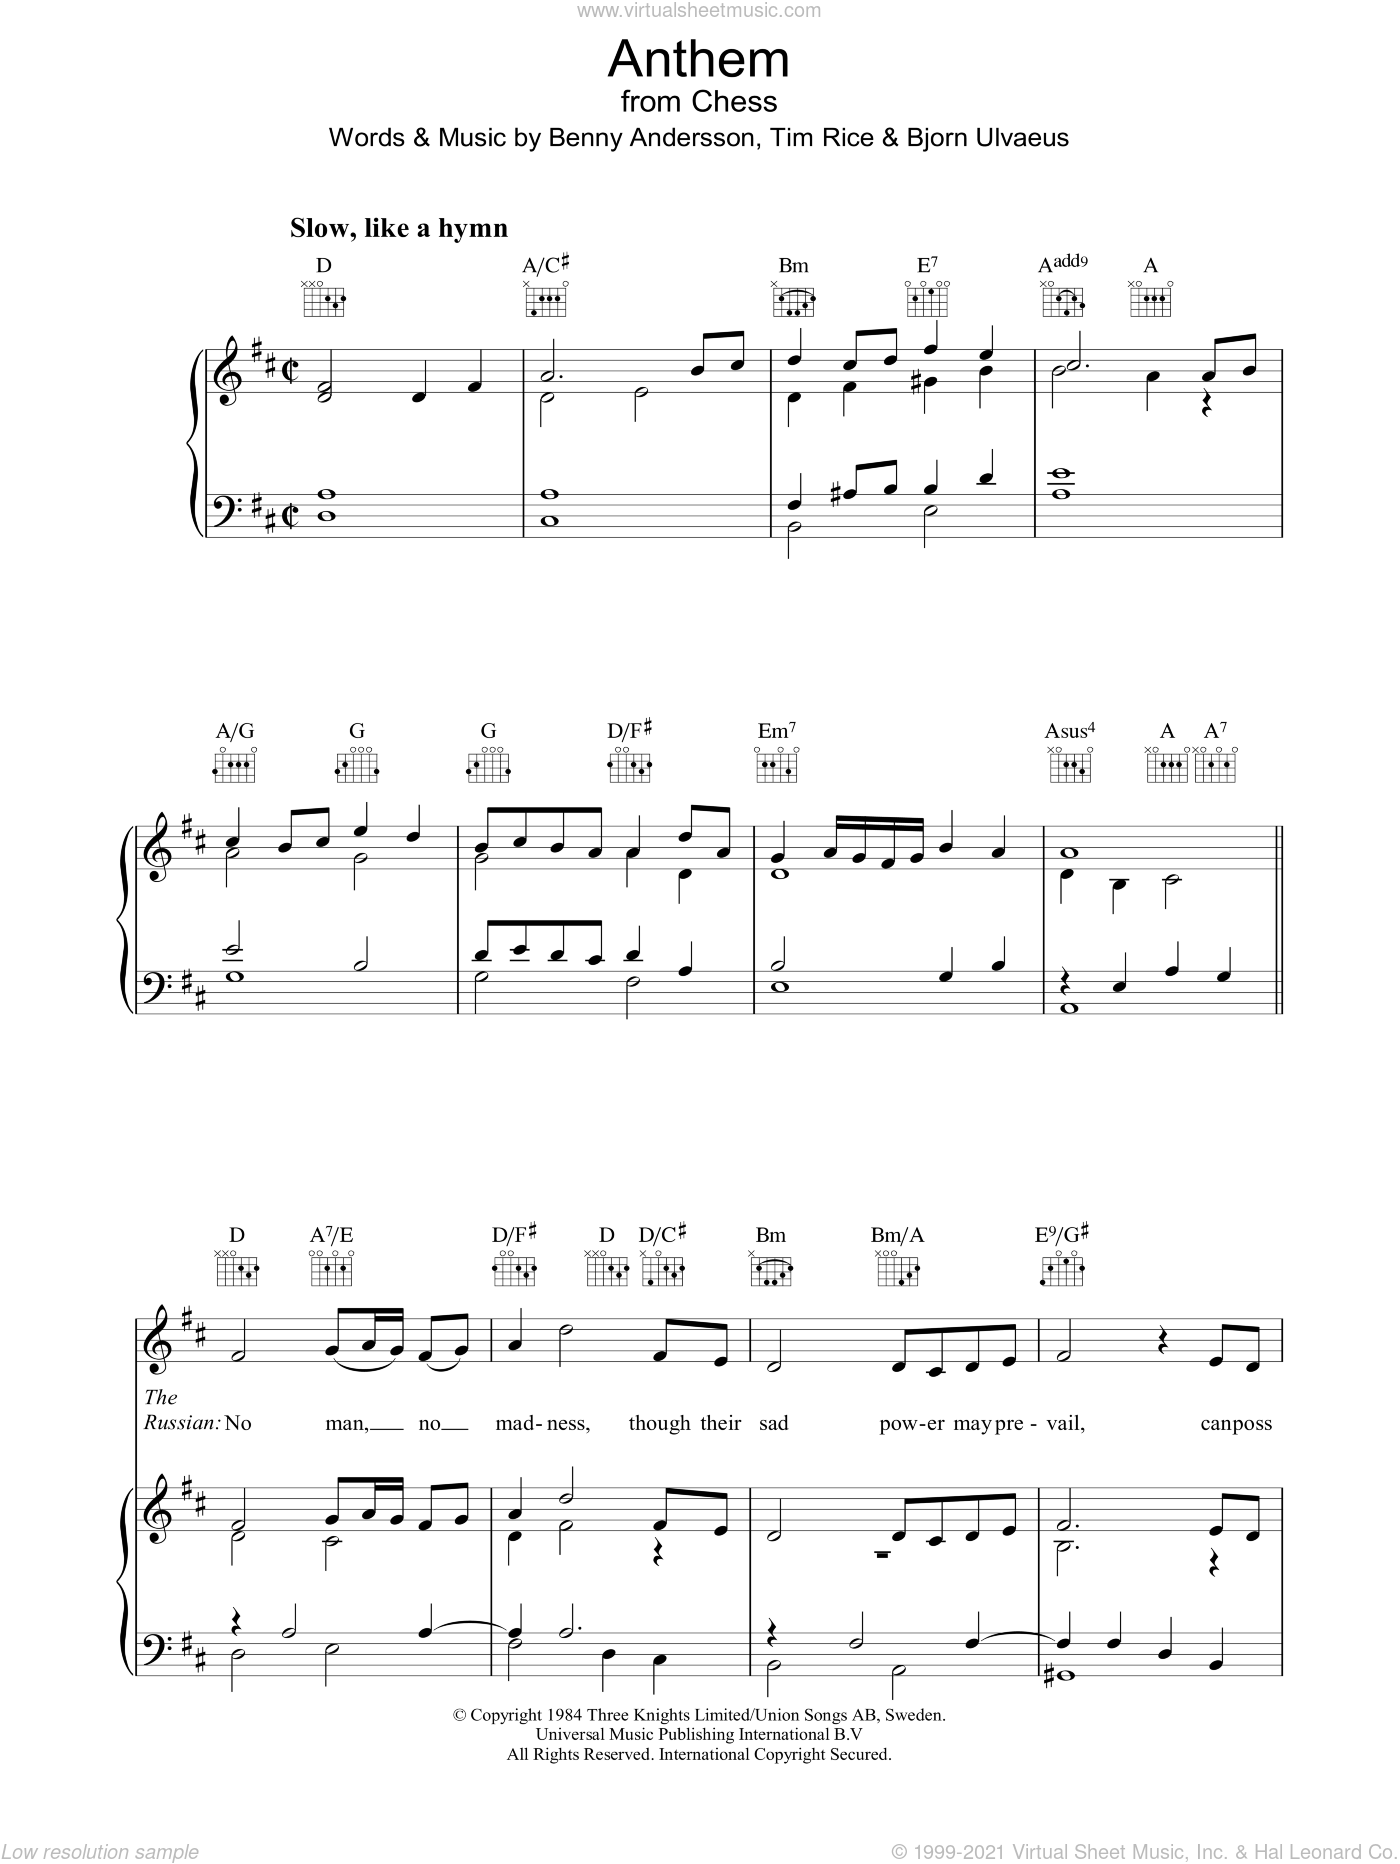 Anthem (from Chess) sheet music for voice, piano or guitar by Benny Andersson, Bjorn Ulvaeus, Miscellaneous and Tim Rice. Score Image Preview.